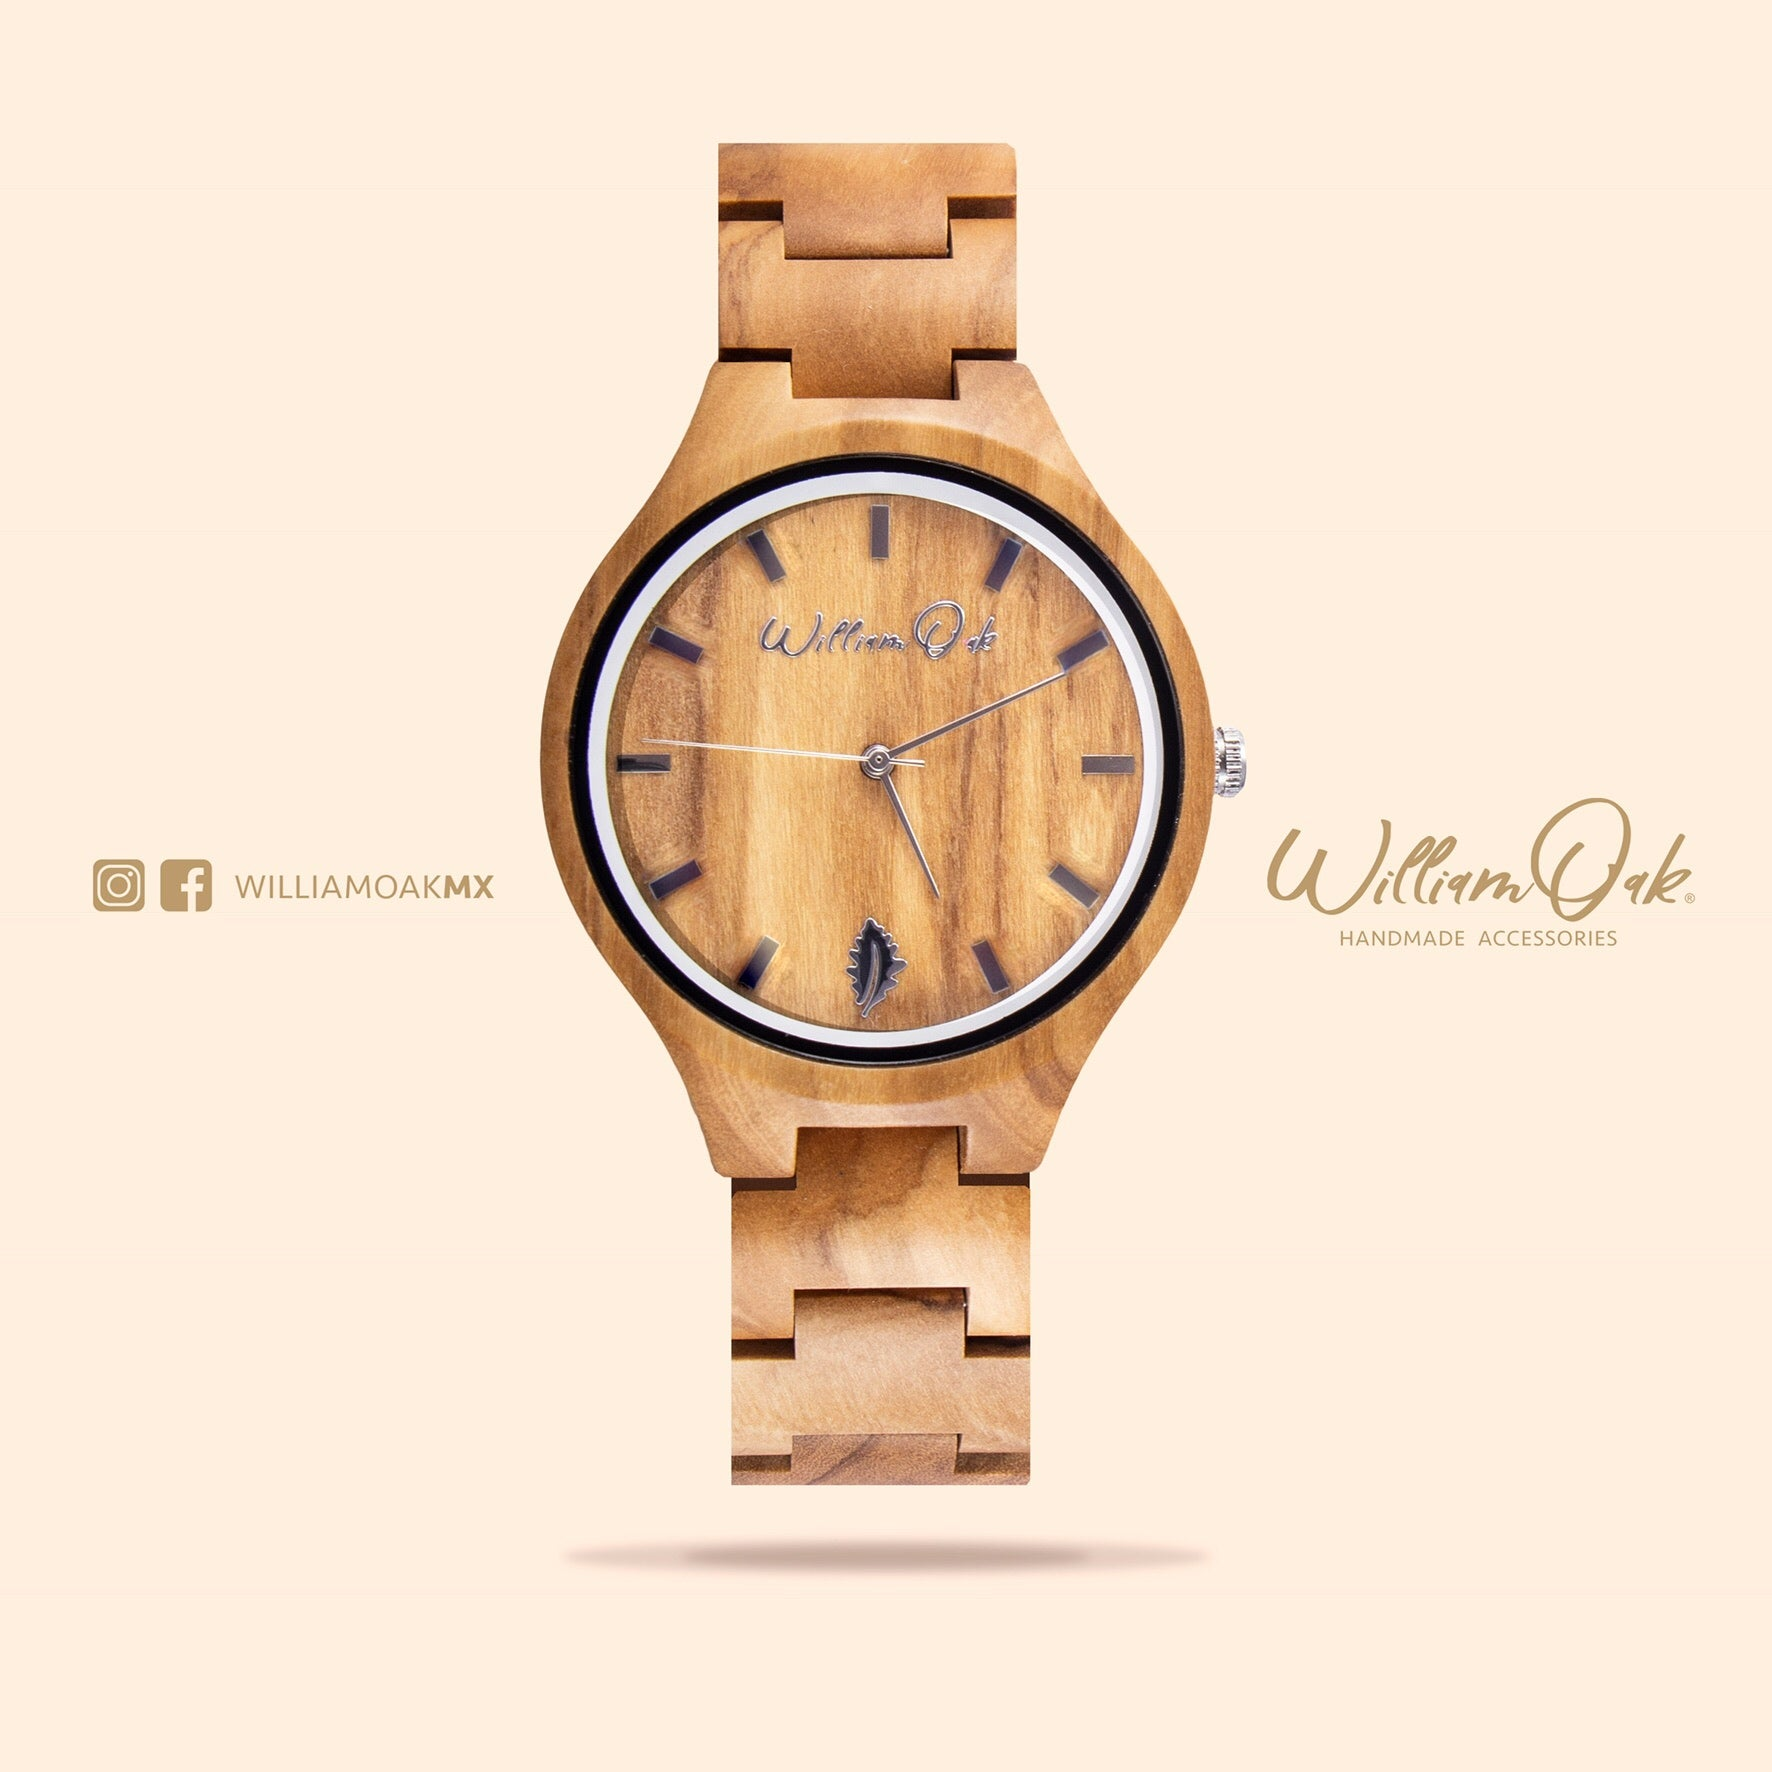 Reloj Humboldt [Olivo] - William Oak